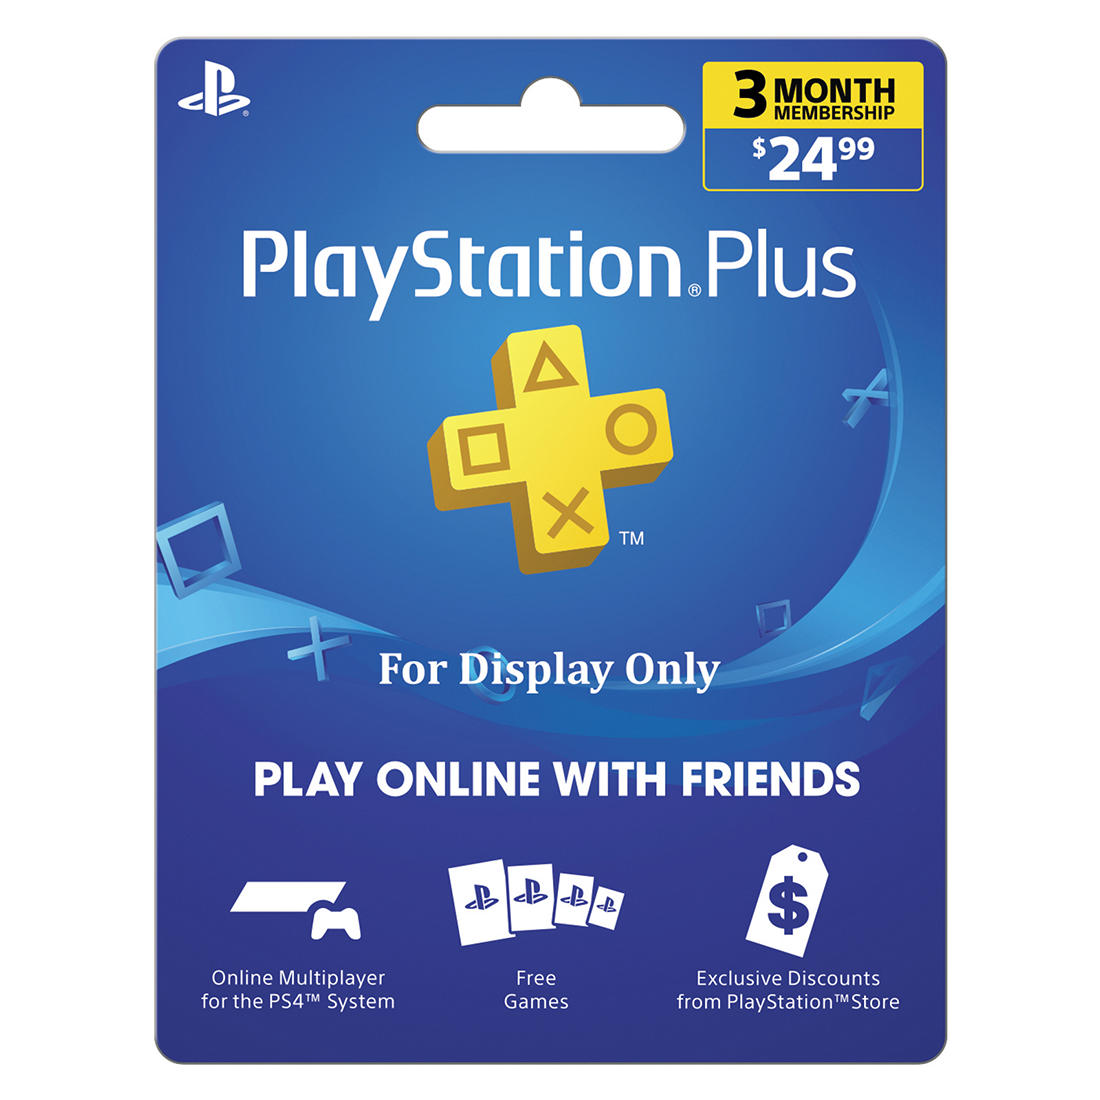 Sony PlayStation Plus 3 Month $24.99 - BJs WholeSale Club